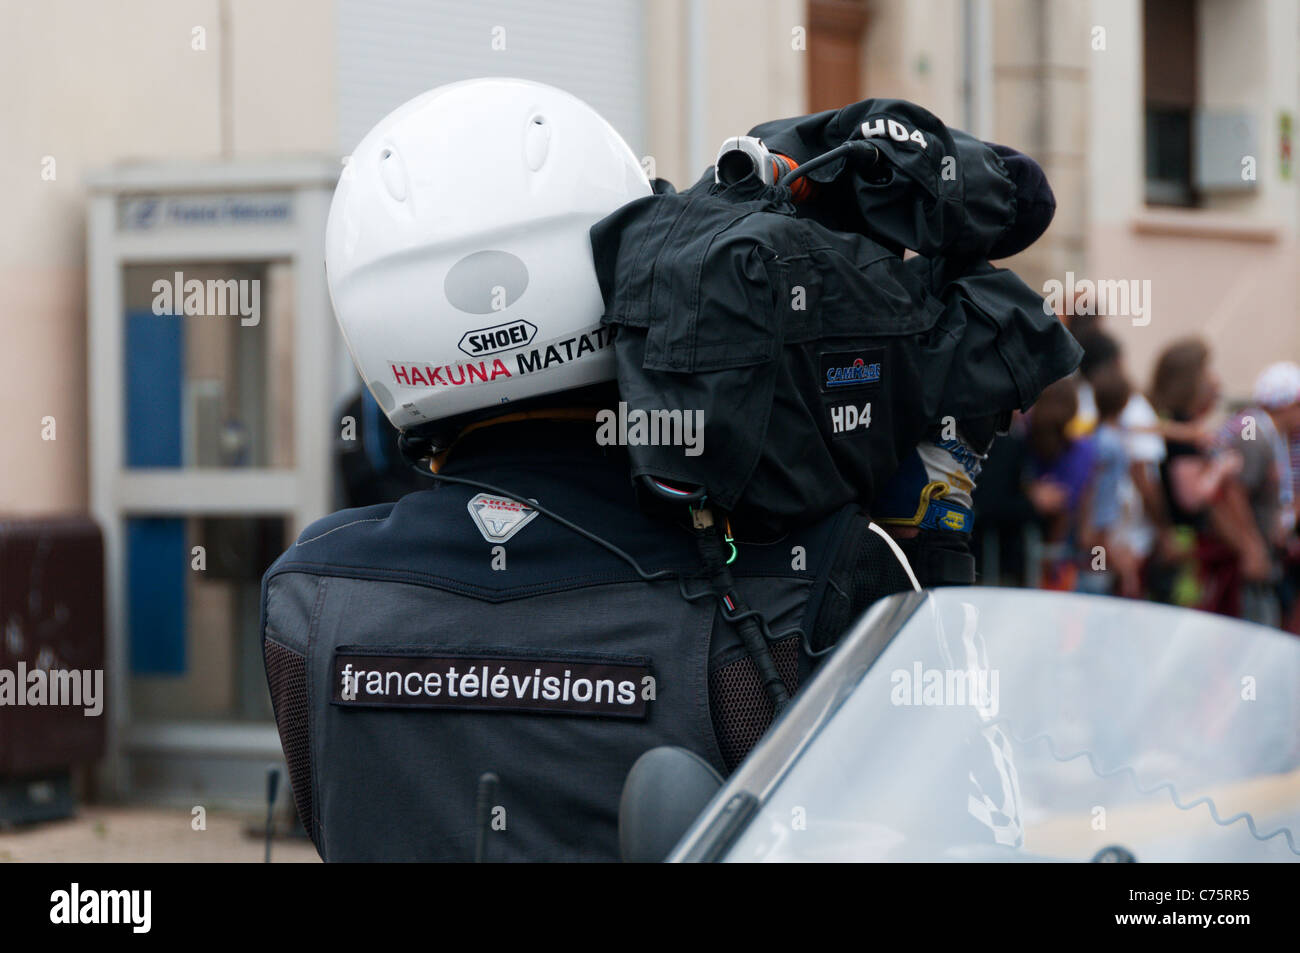 An outside broadcast cameraman for France Televisions filming the Tour de France. Stock Photo